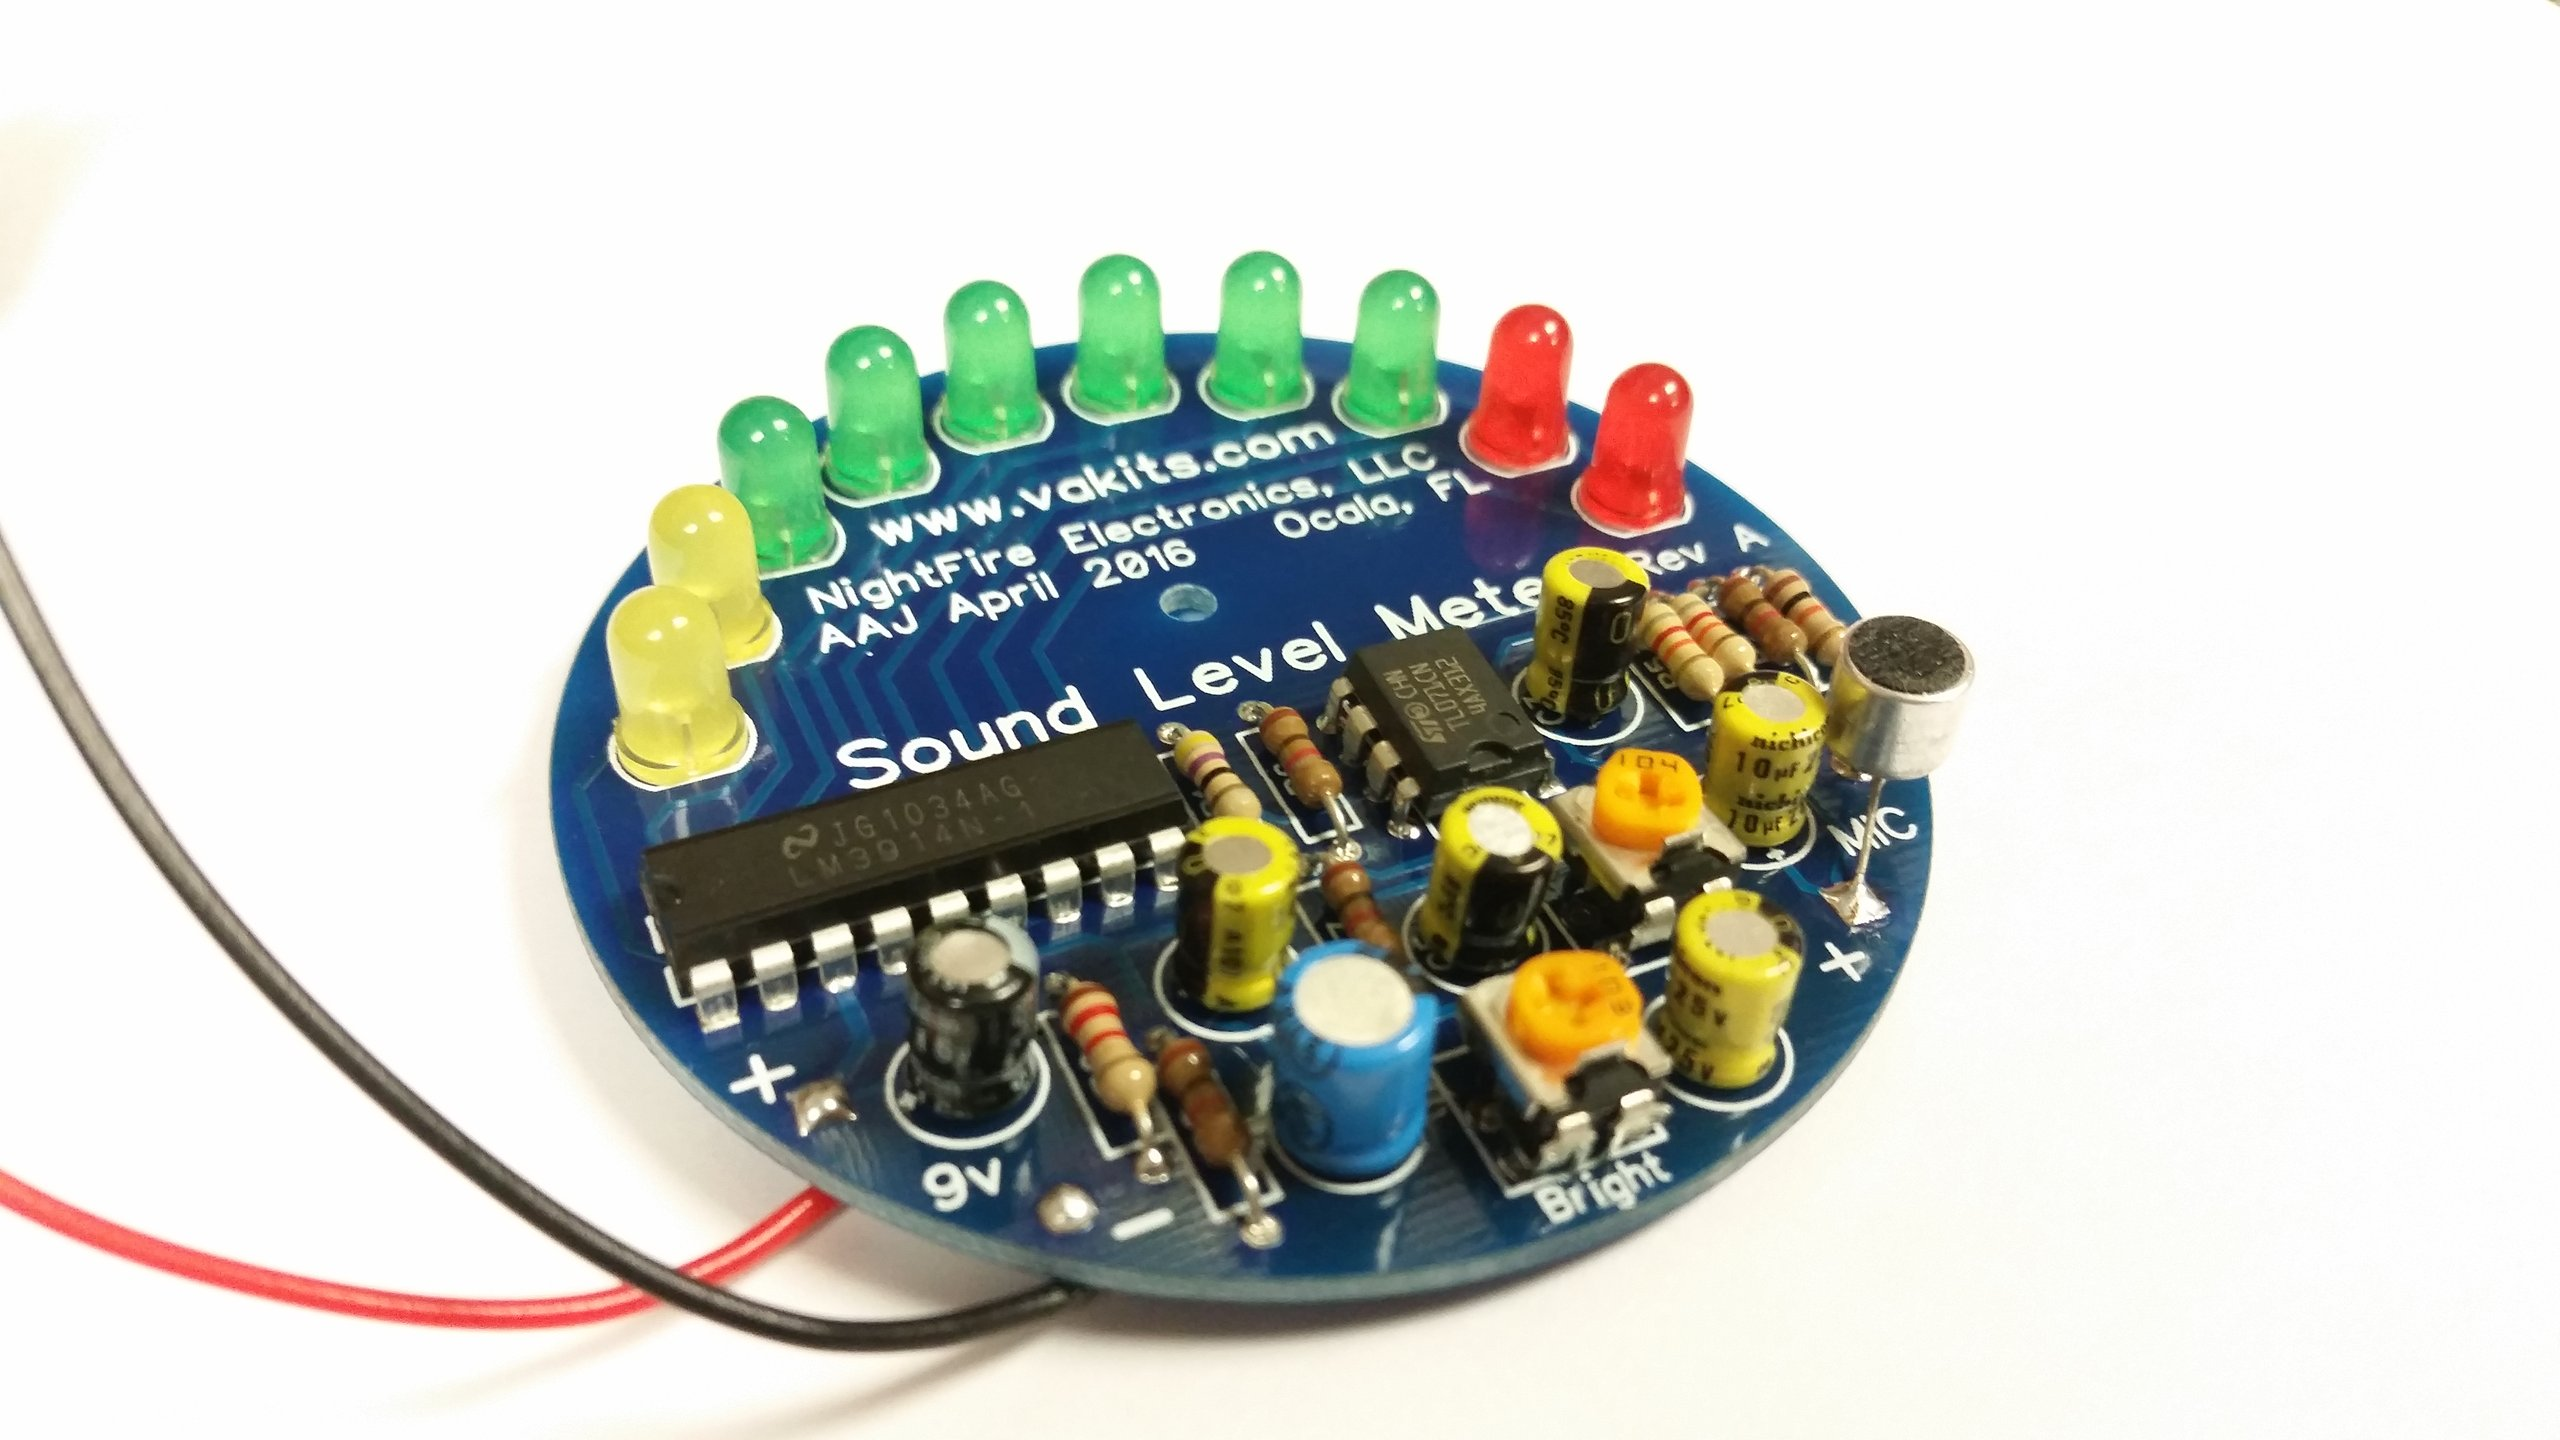 Condenser Microphone Pre Circuit furthermore Make Simple Audio  lifier Using Lm386 additionally Stereo Audio  lifier Using Ic Lm386 moreover Lm358 Mic in addition 3 5 Mm Plug Schematic. on lm386 mic